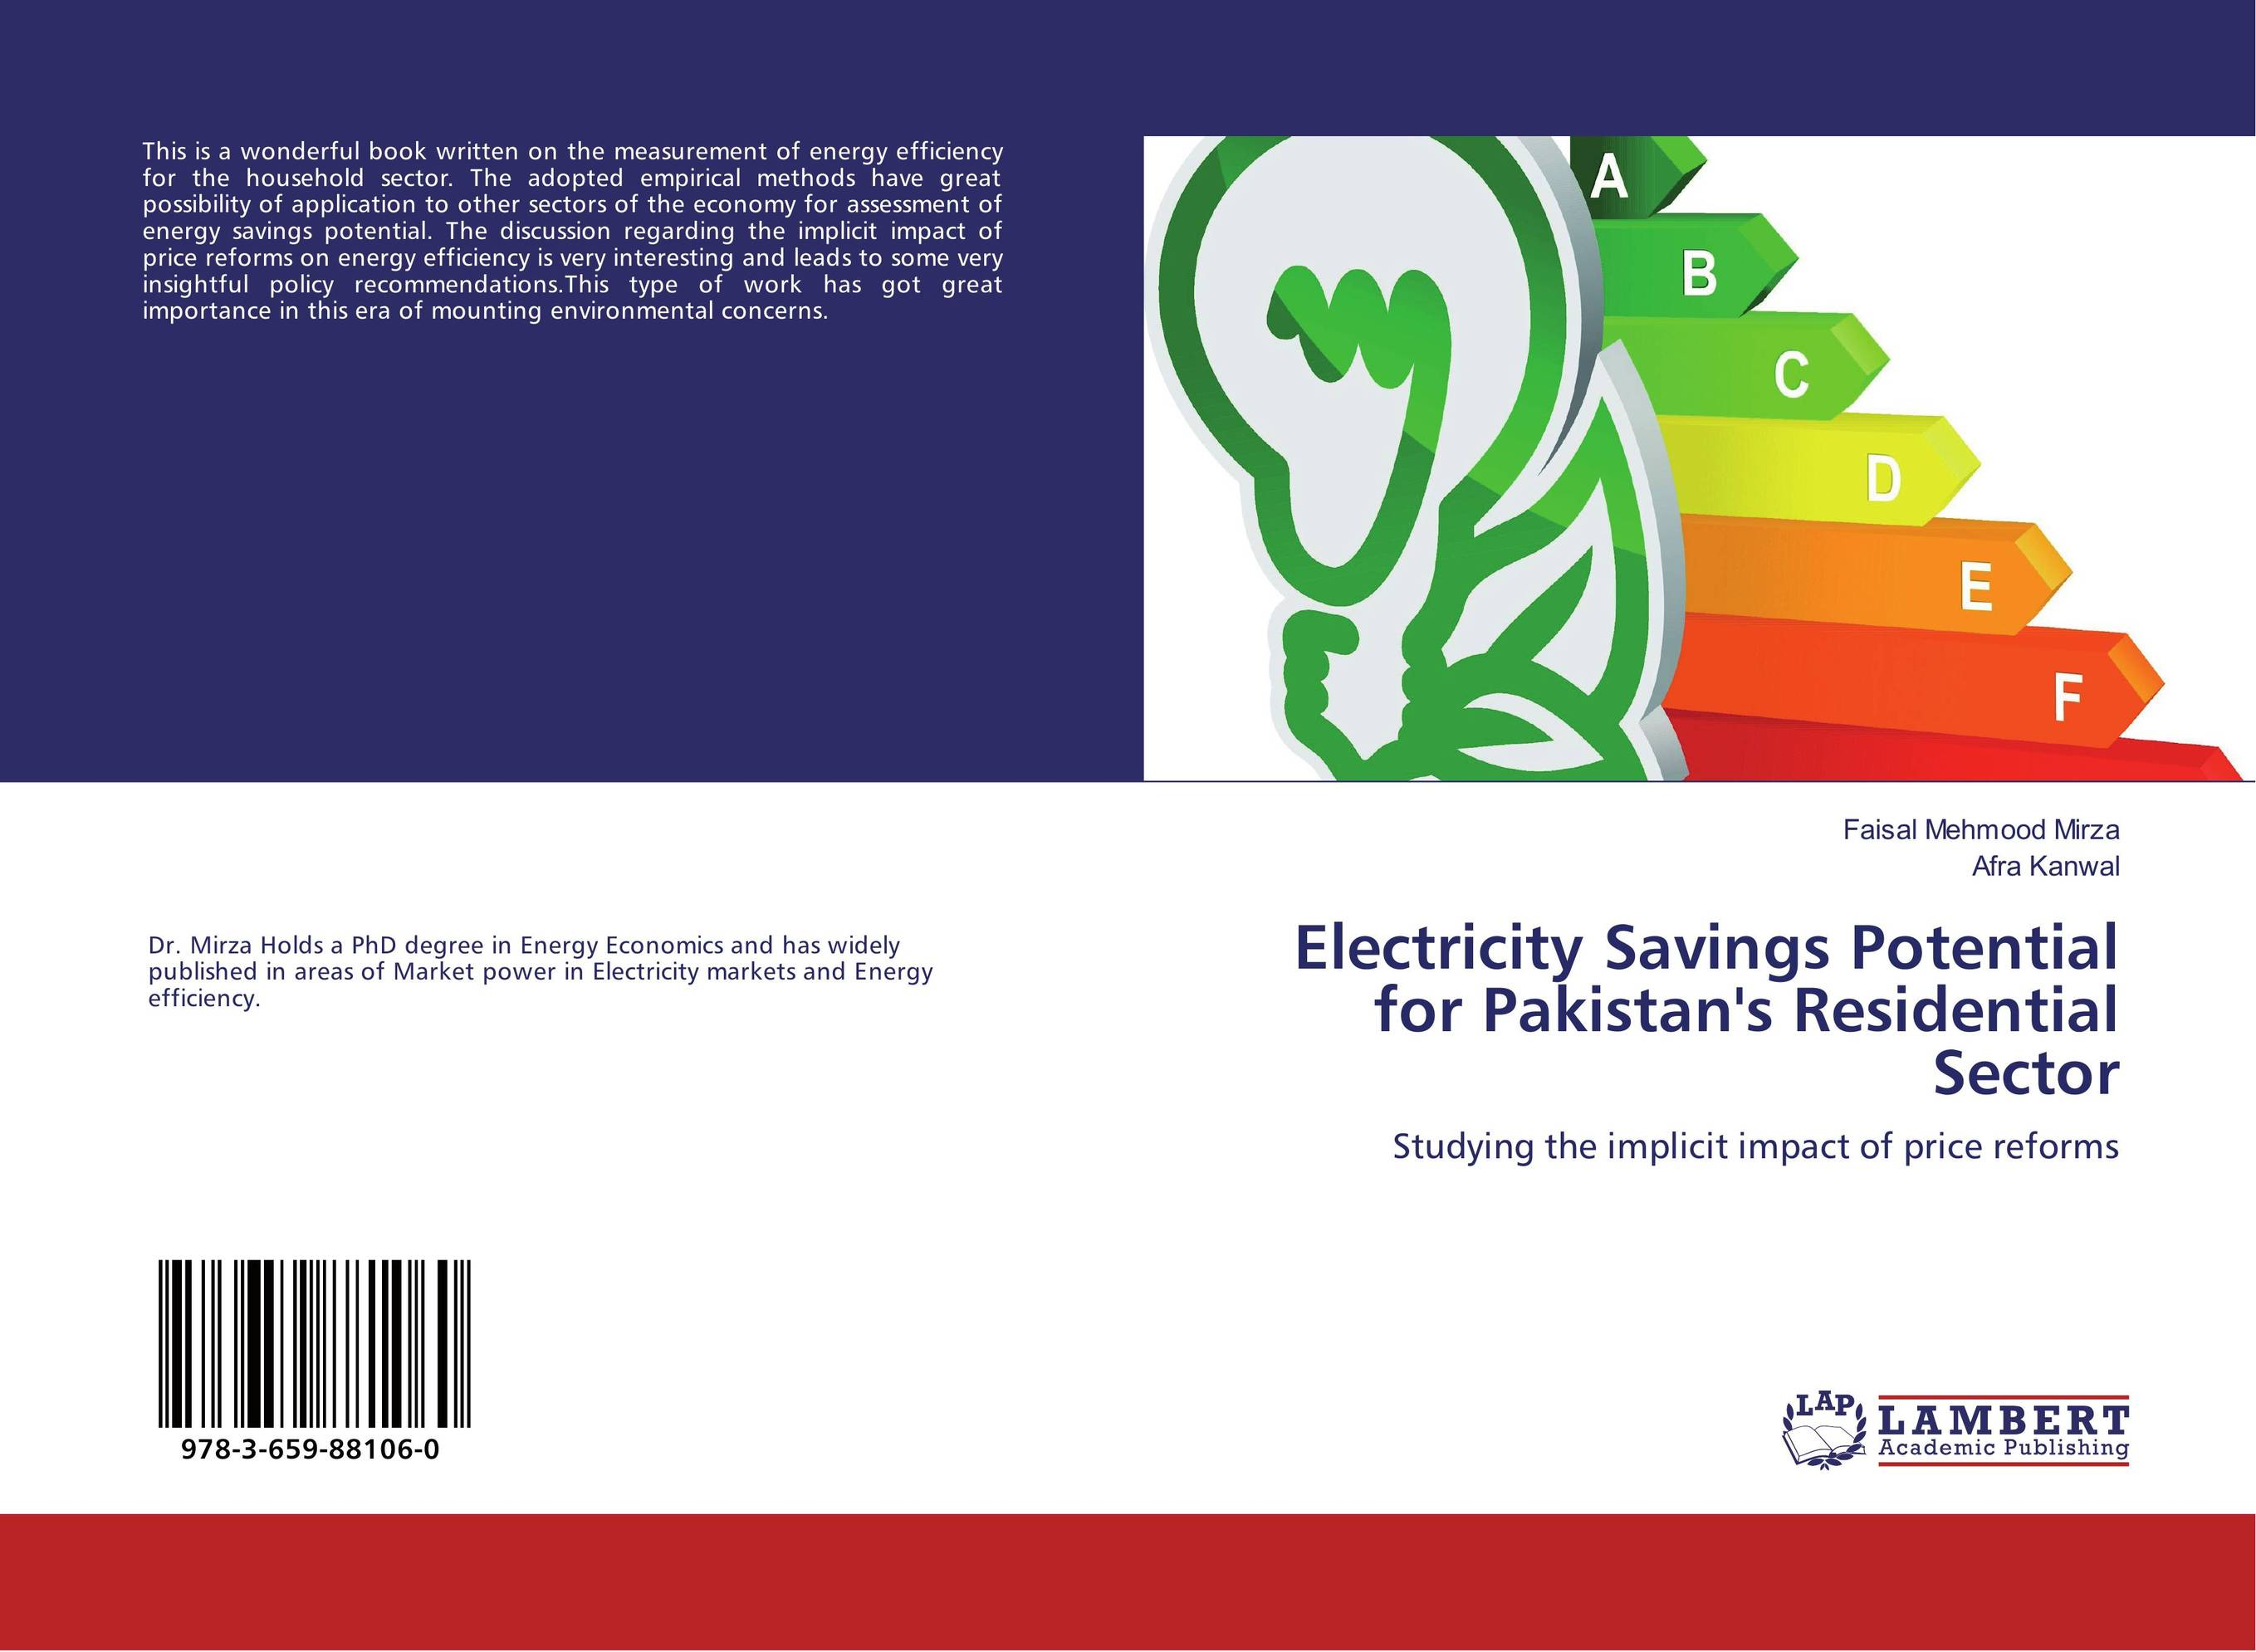 Electricity Savings Potential for Pakistan's Residential Sector development of ghg mitigation options for alberta's energy sector